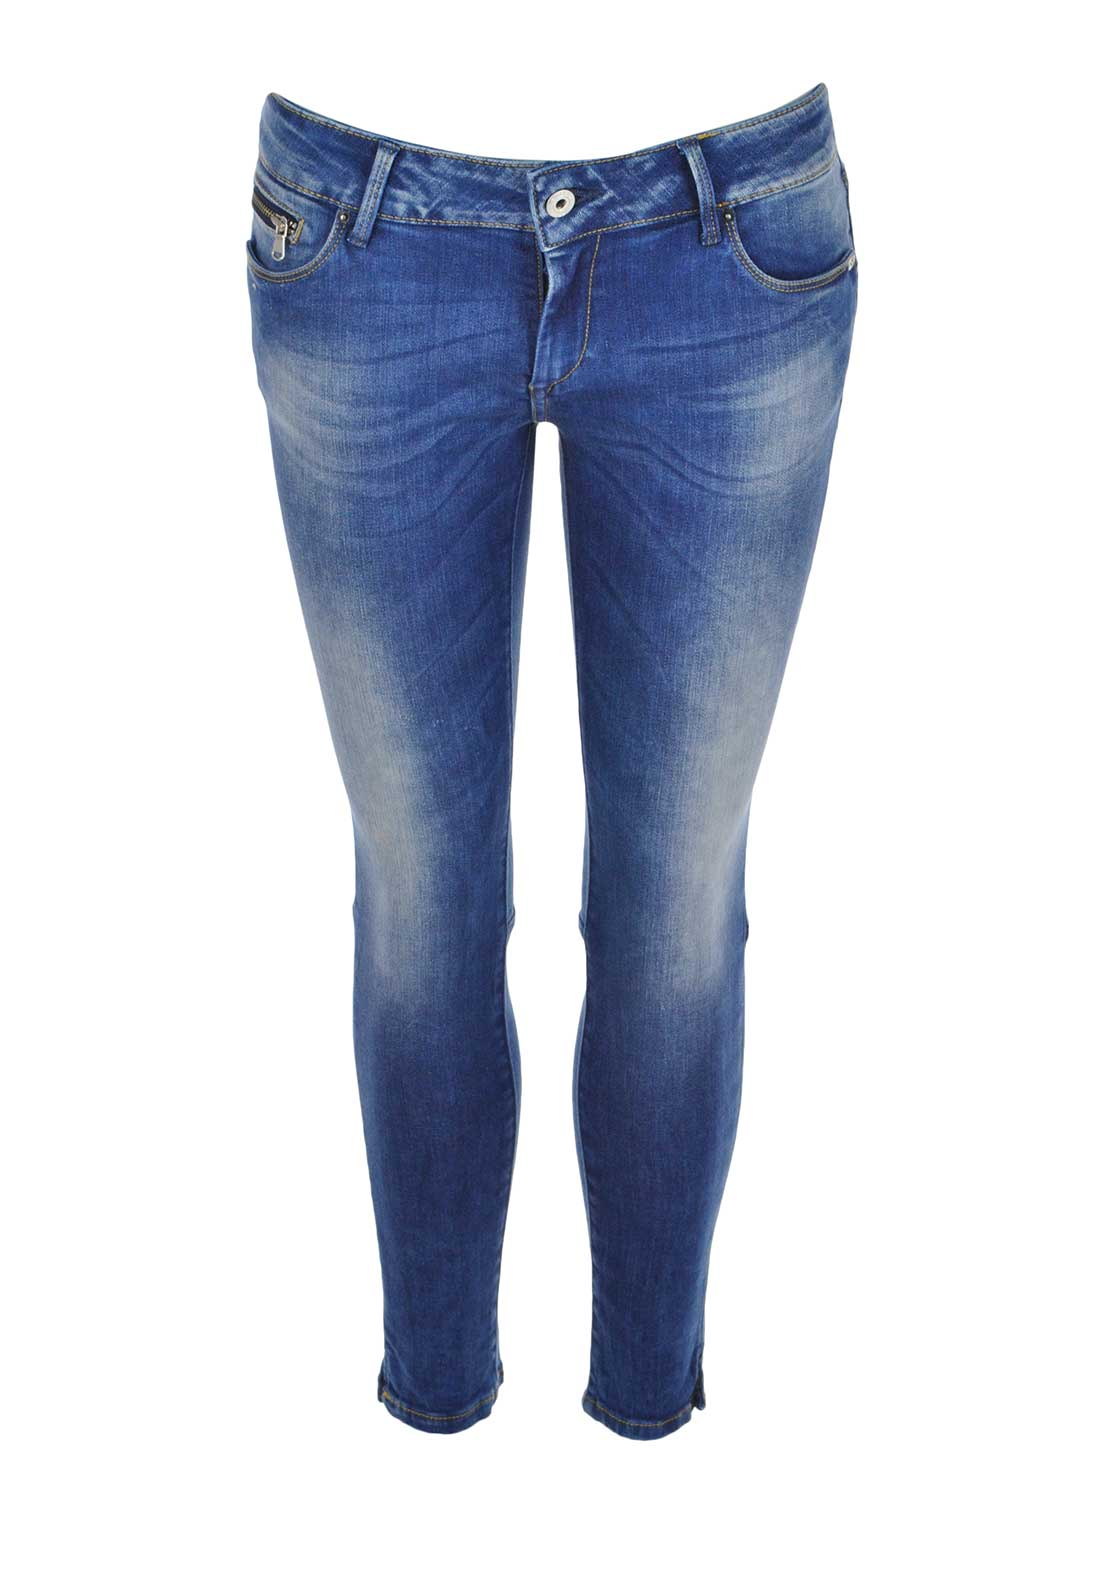 Tiffosi Womens Kate Faded Skinny Cropped Jeans, Blue Denim